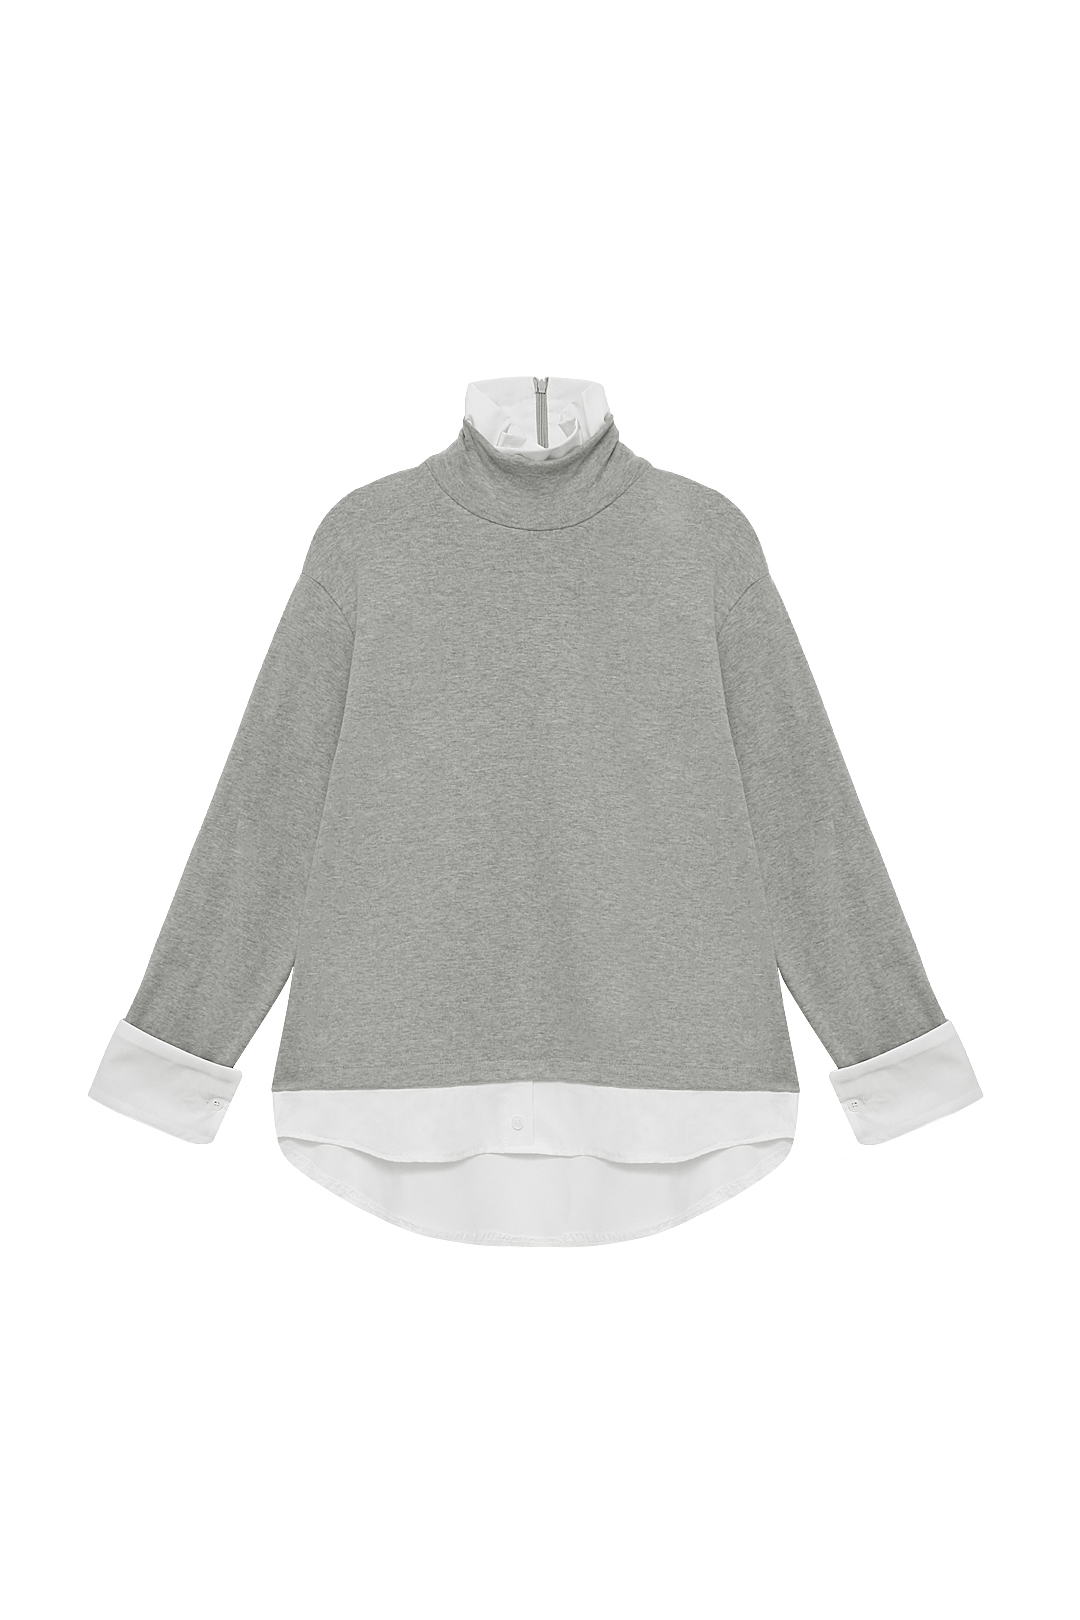 Plus Size Light Grey Two-in-one Shirt Knitwear